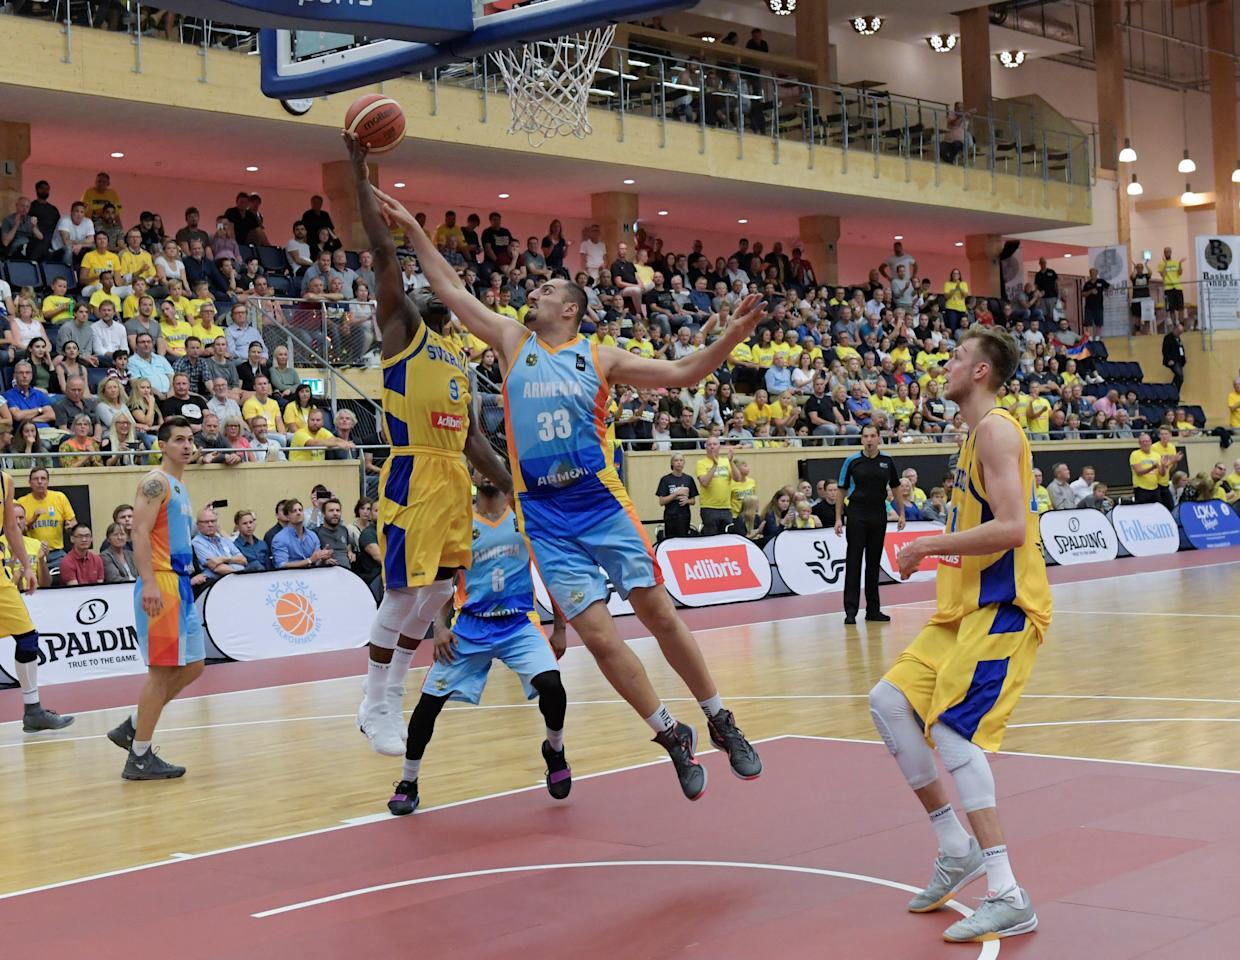 Basketball - Sweden v Armenia - FIBA Basketball World Cup 2019 European Pre-Qualifiers Group A - IFU Arena in Uppsala - August 16, 2017. Sweden's Thomas Massamba is bloccked by Armenia's Ararat Kochinyan. TT News Agency/via REUTERS ATTENTION EDITORS - THIS IMAGE WAS PROVIDED BY A THIRD PARTY. SWEDEN OUT.